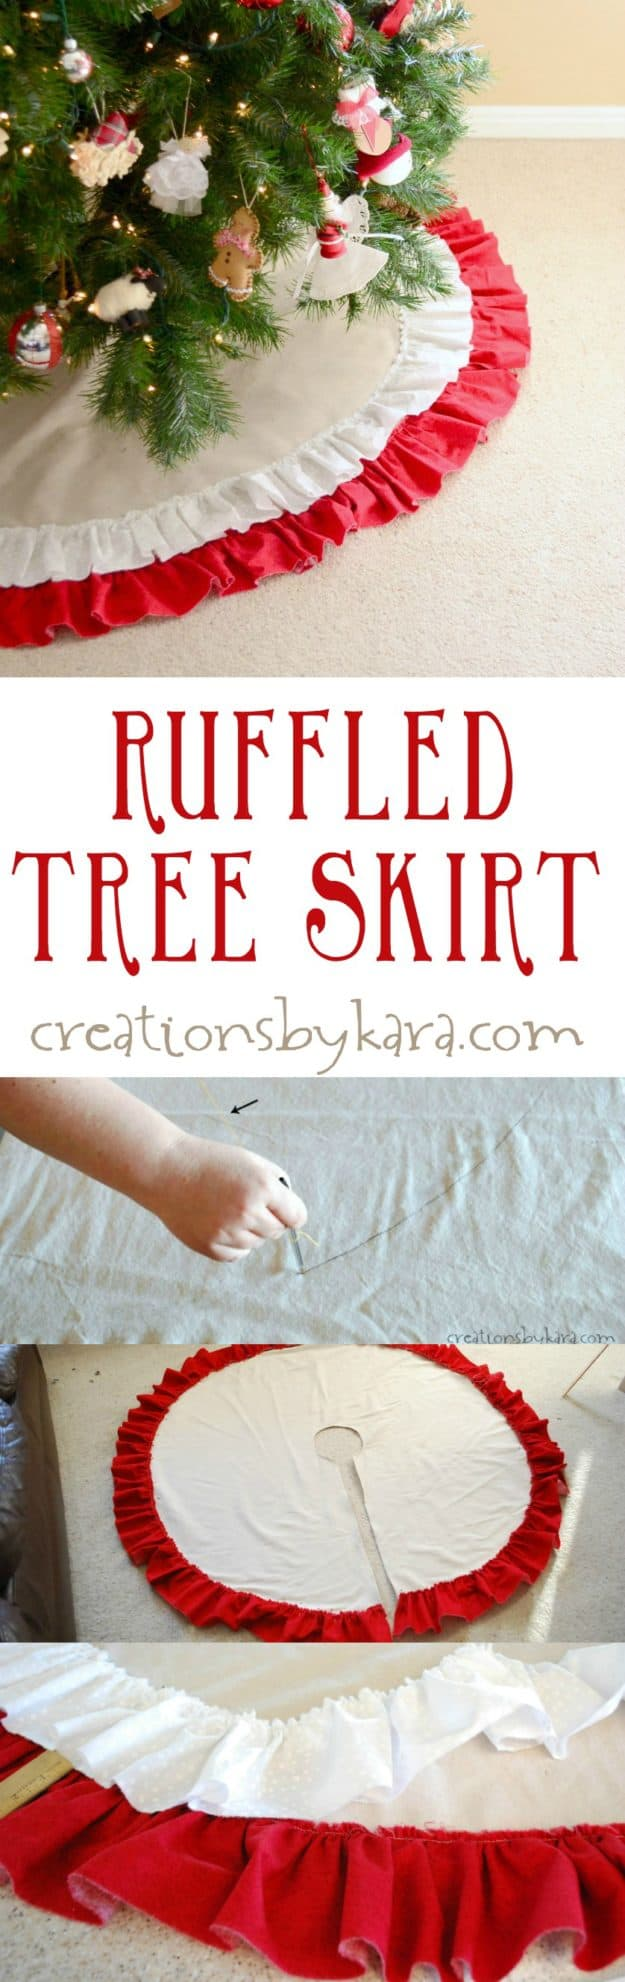 Step by step instructions for making a ruffled tree skirt. It looks just gorgeous under the Christmas tree!